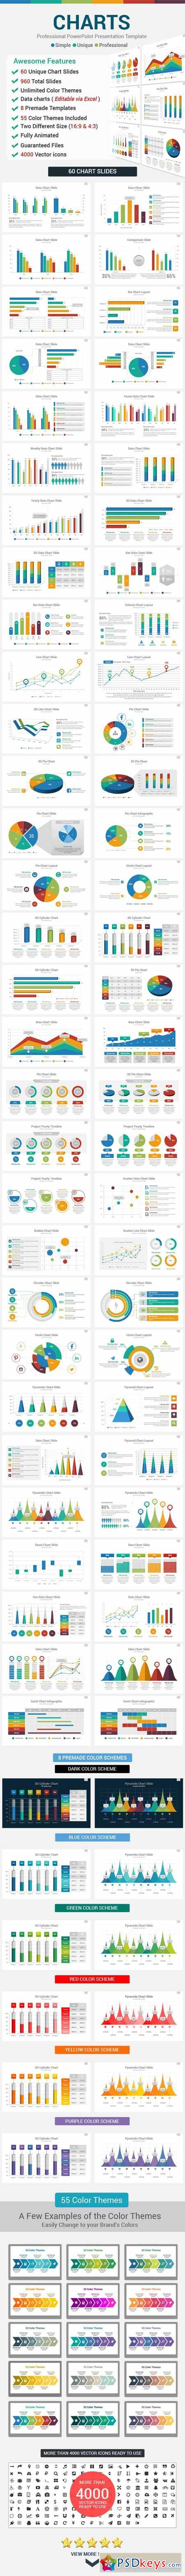 Data Charts PowerPoint Presentation Template 12522804